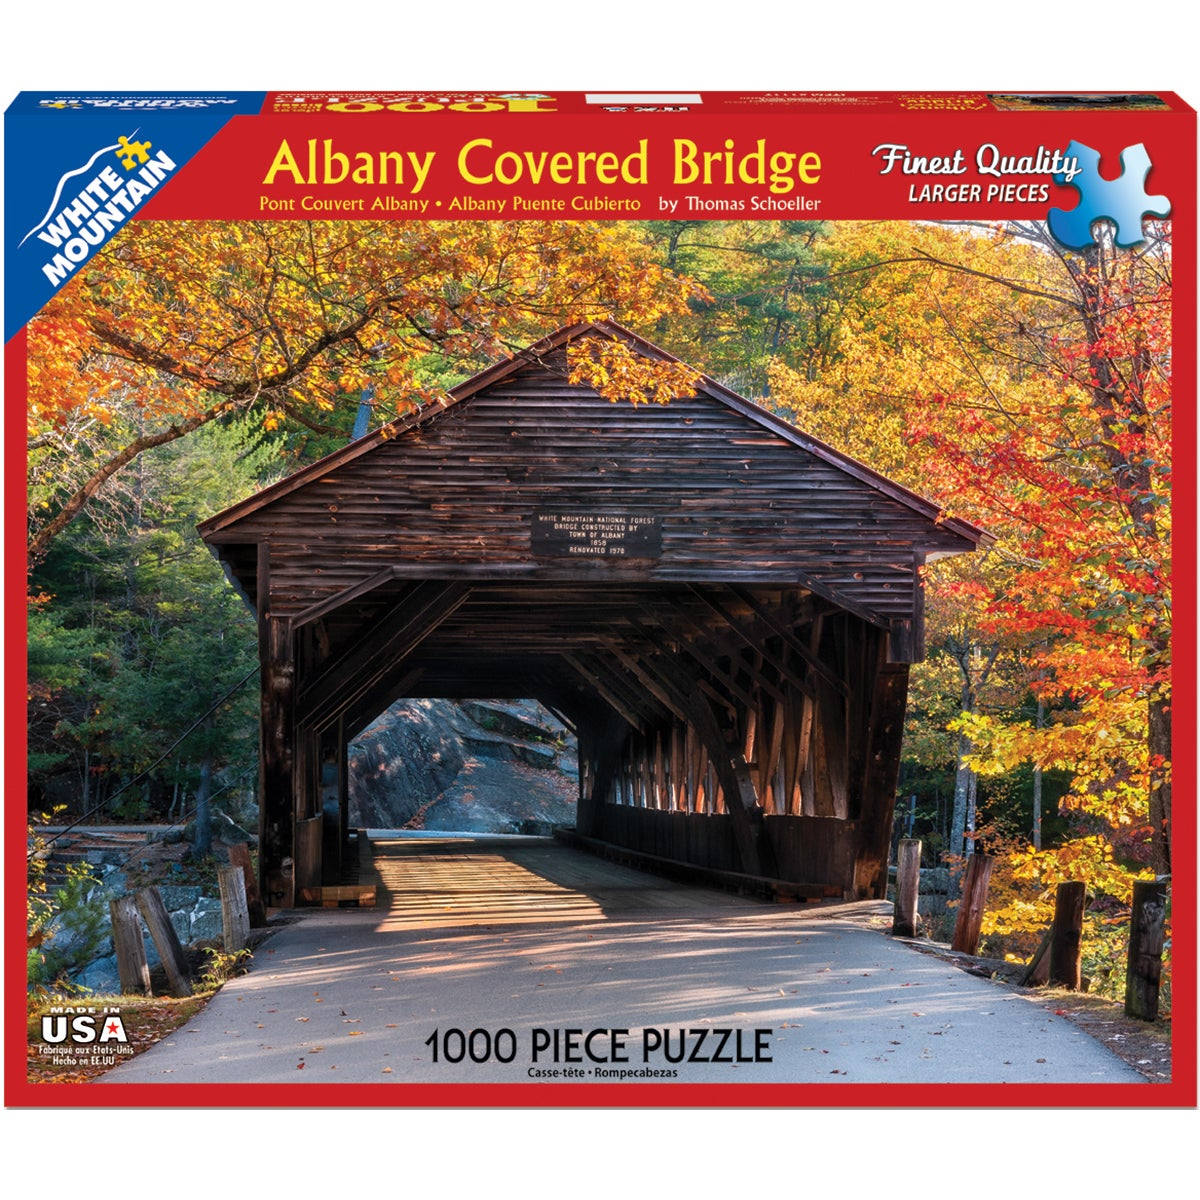 White Mountain Puzzles Jigsaw Puzzle 1000 Pieces 24inX30i...